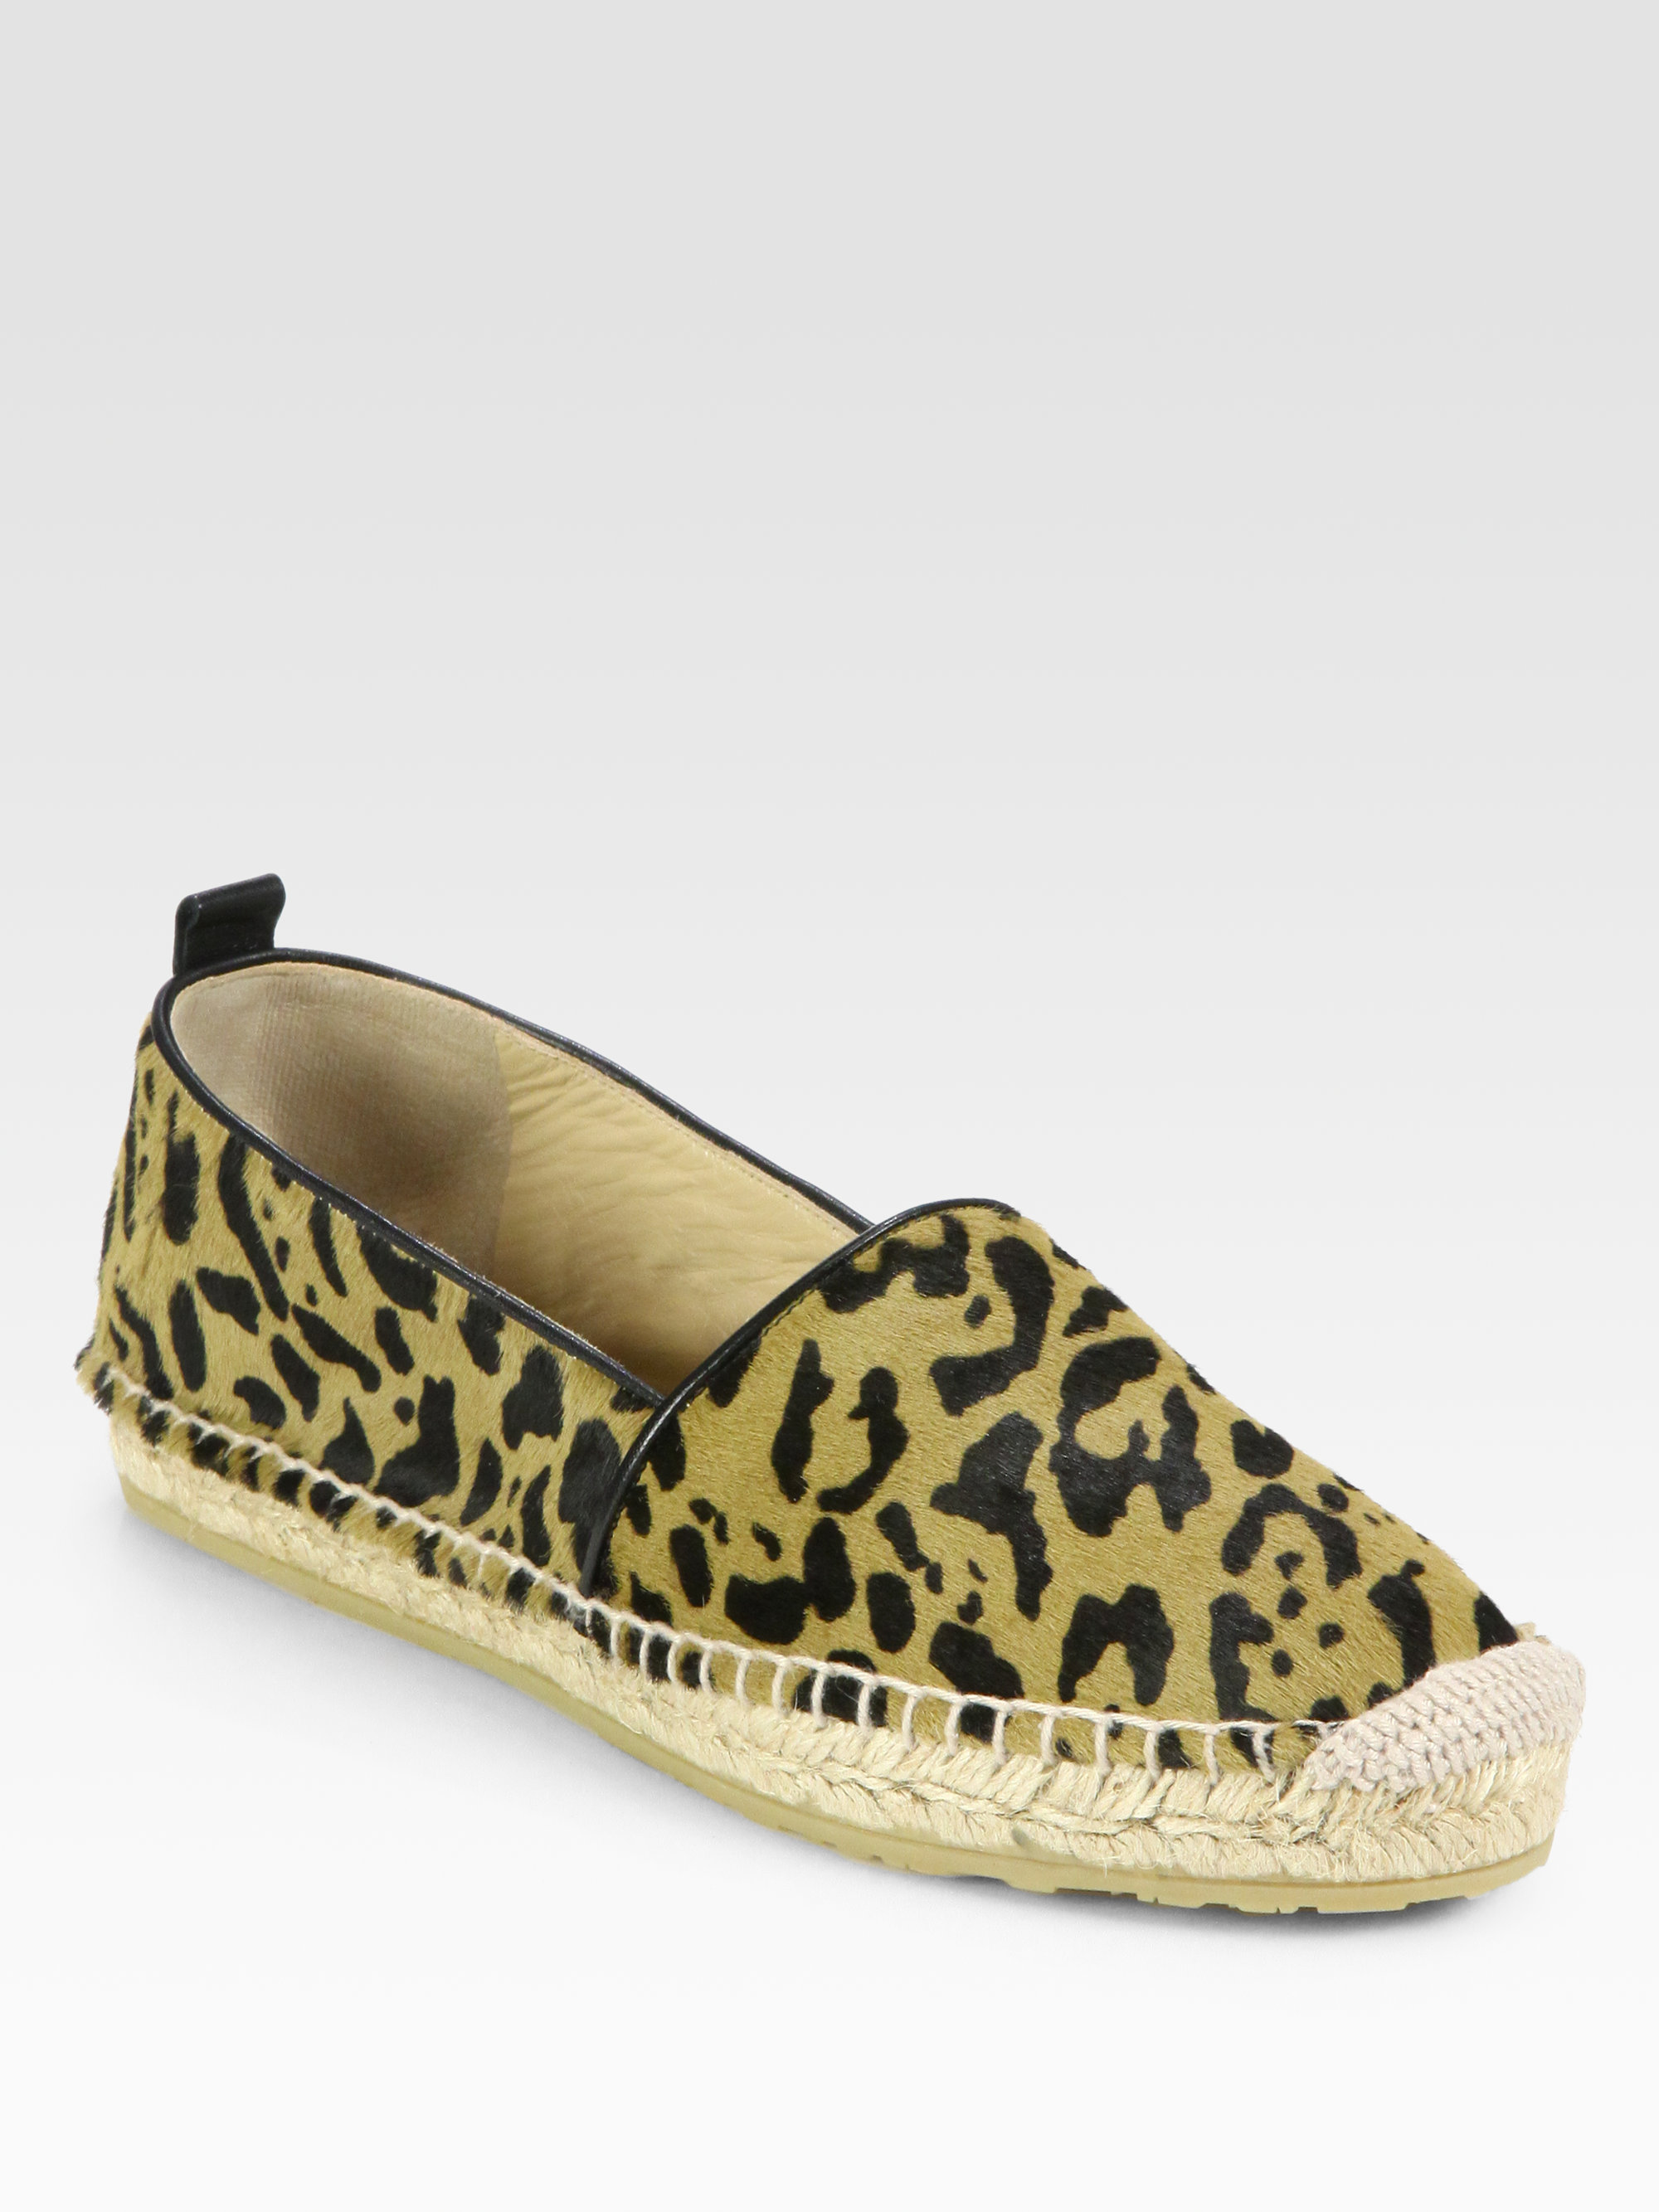 jimmy choo gaine leopardprint pony hair espadrille flats. Black Bedroom Furniture Sets. Home Design Ideas